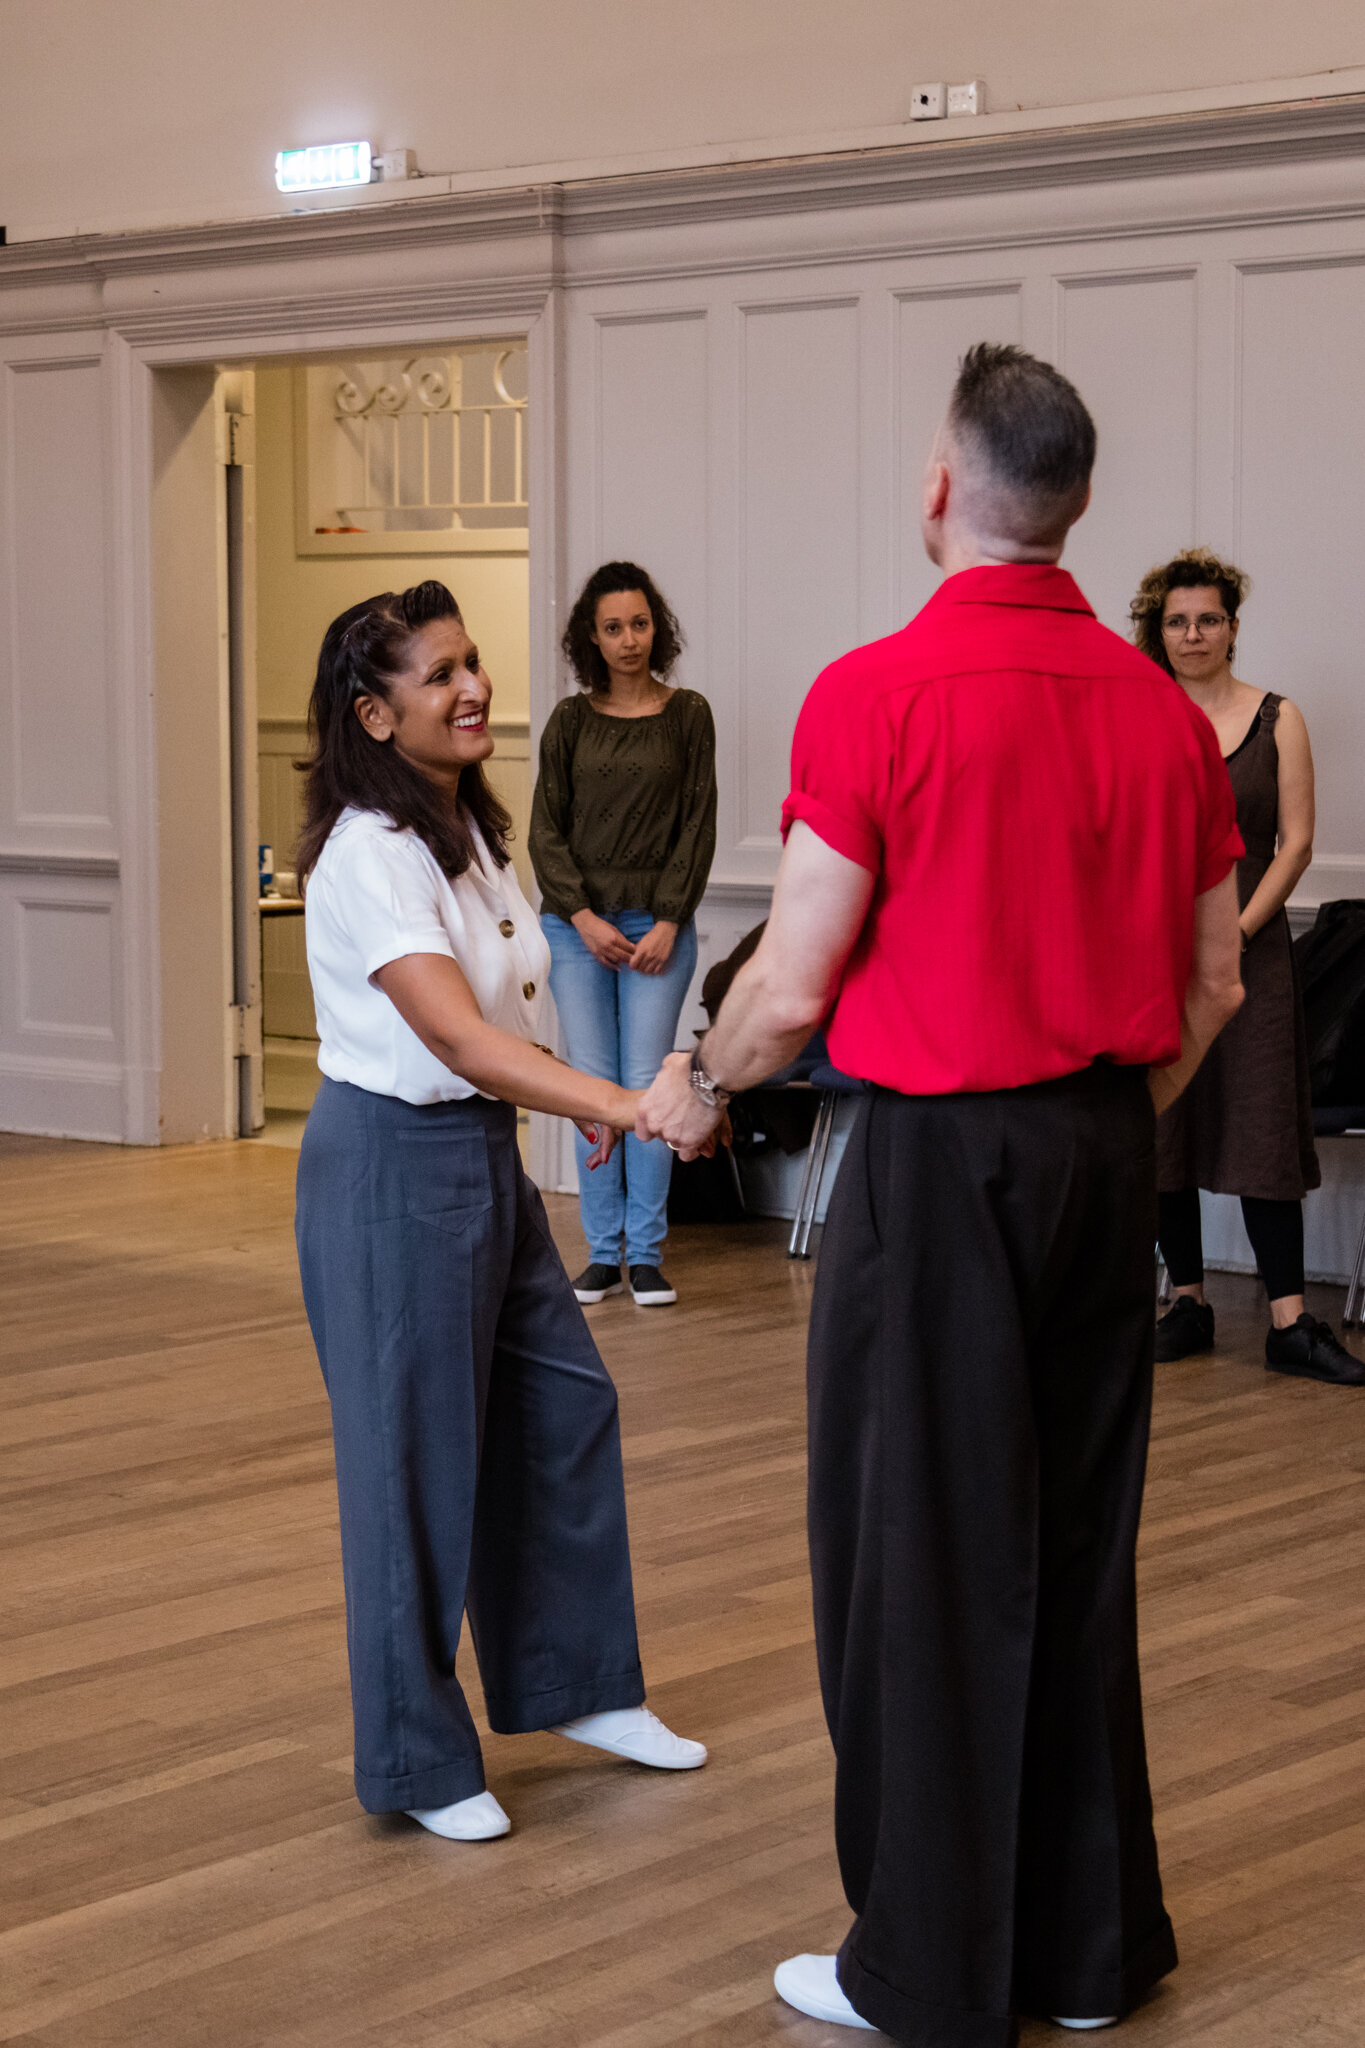 Edinbop Summerhall July 2019-14.jpg